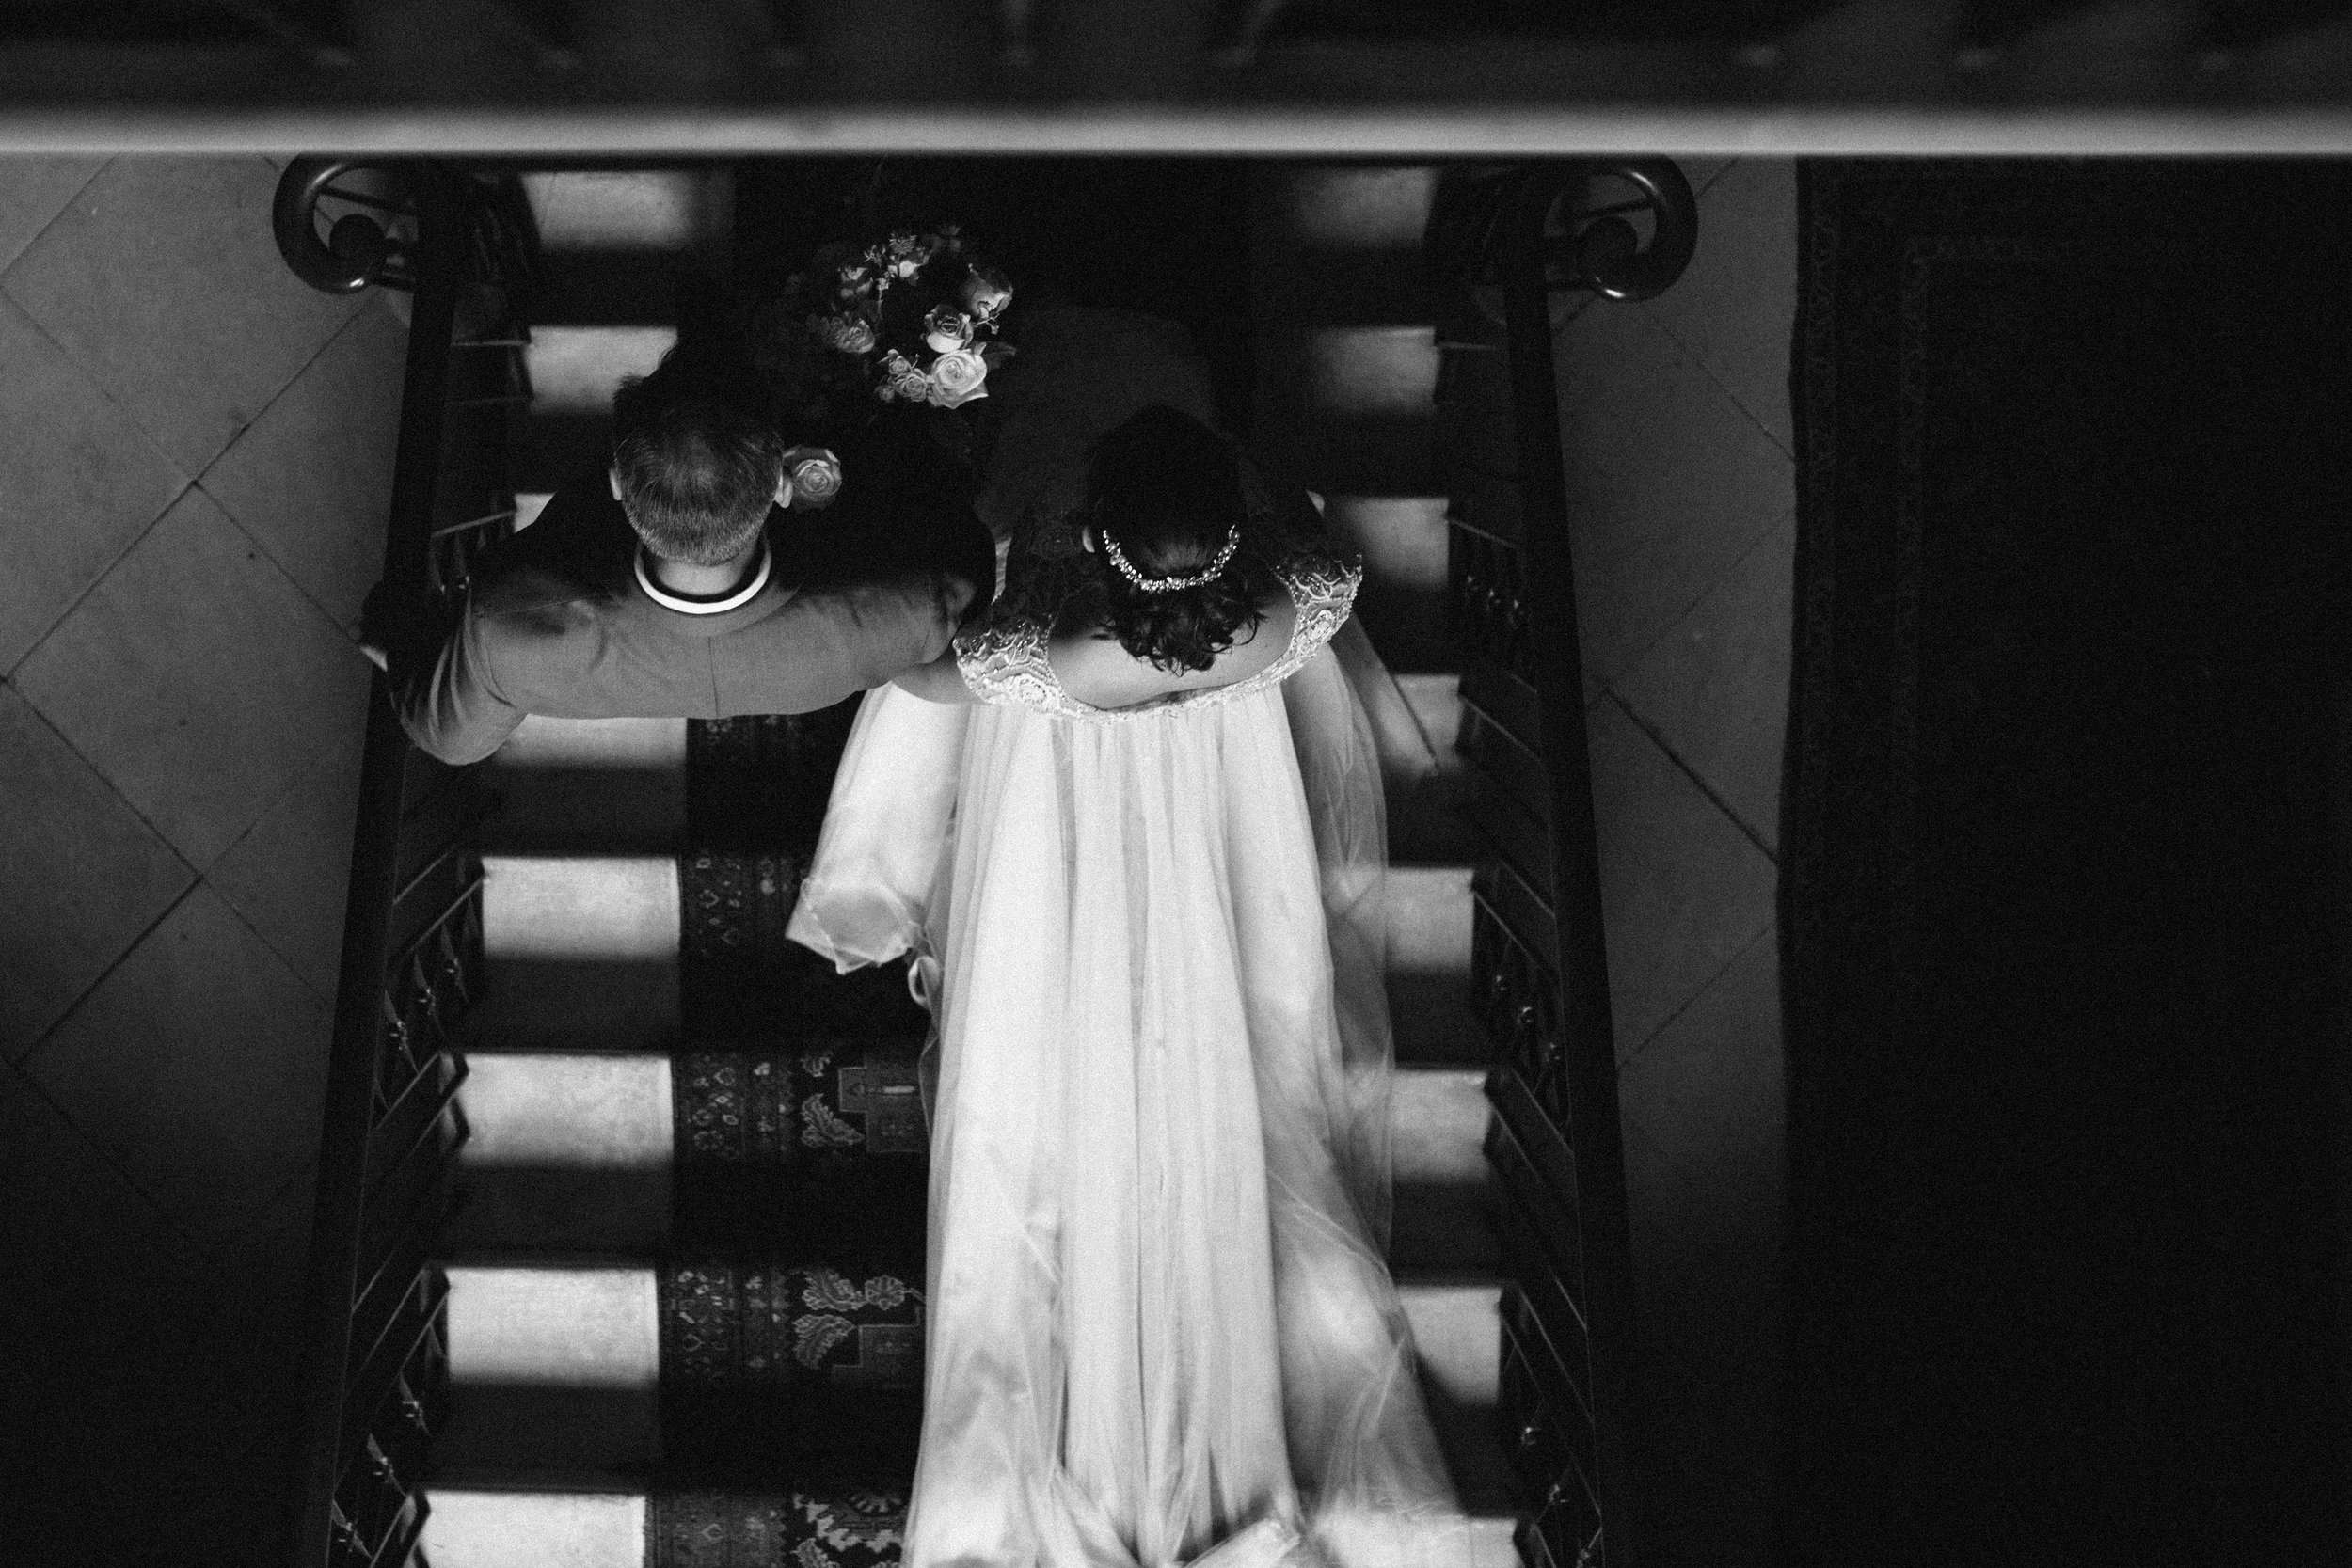 A shot from above of a bride walking down the stairs with her dad